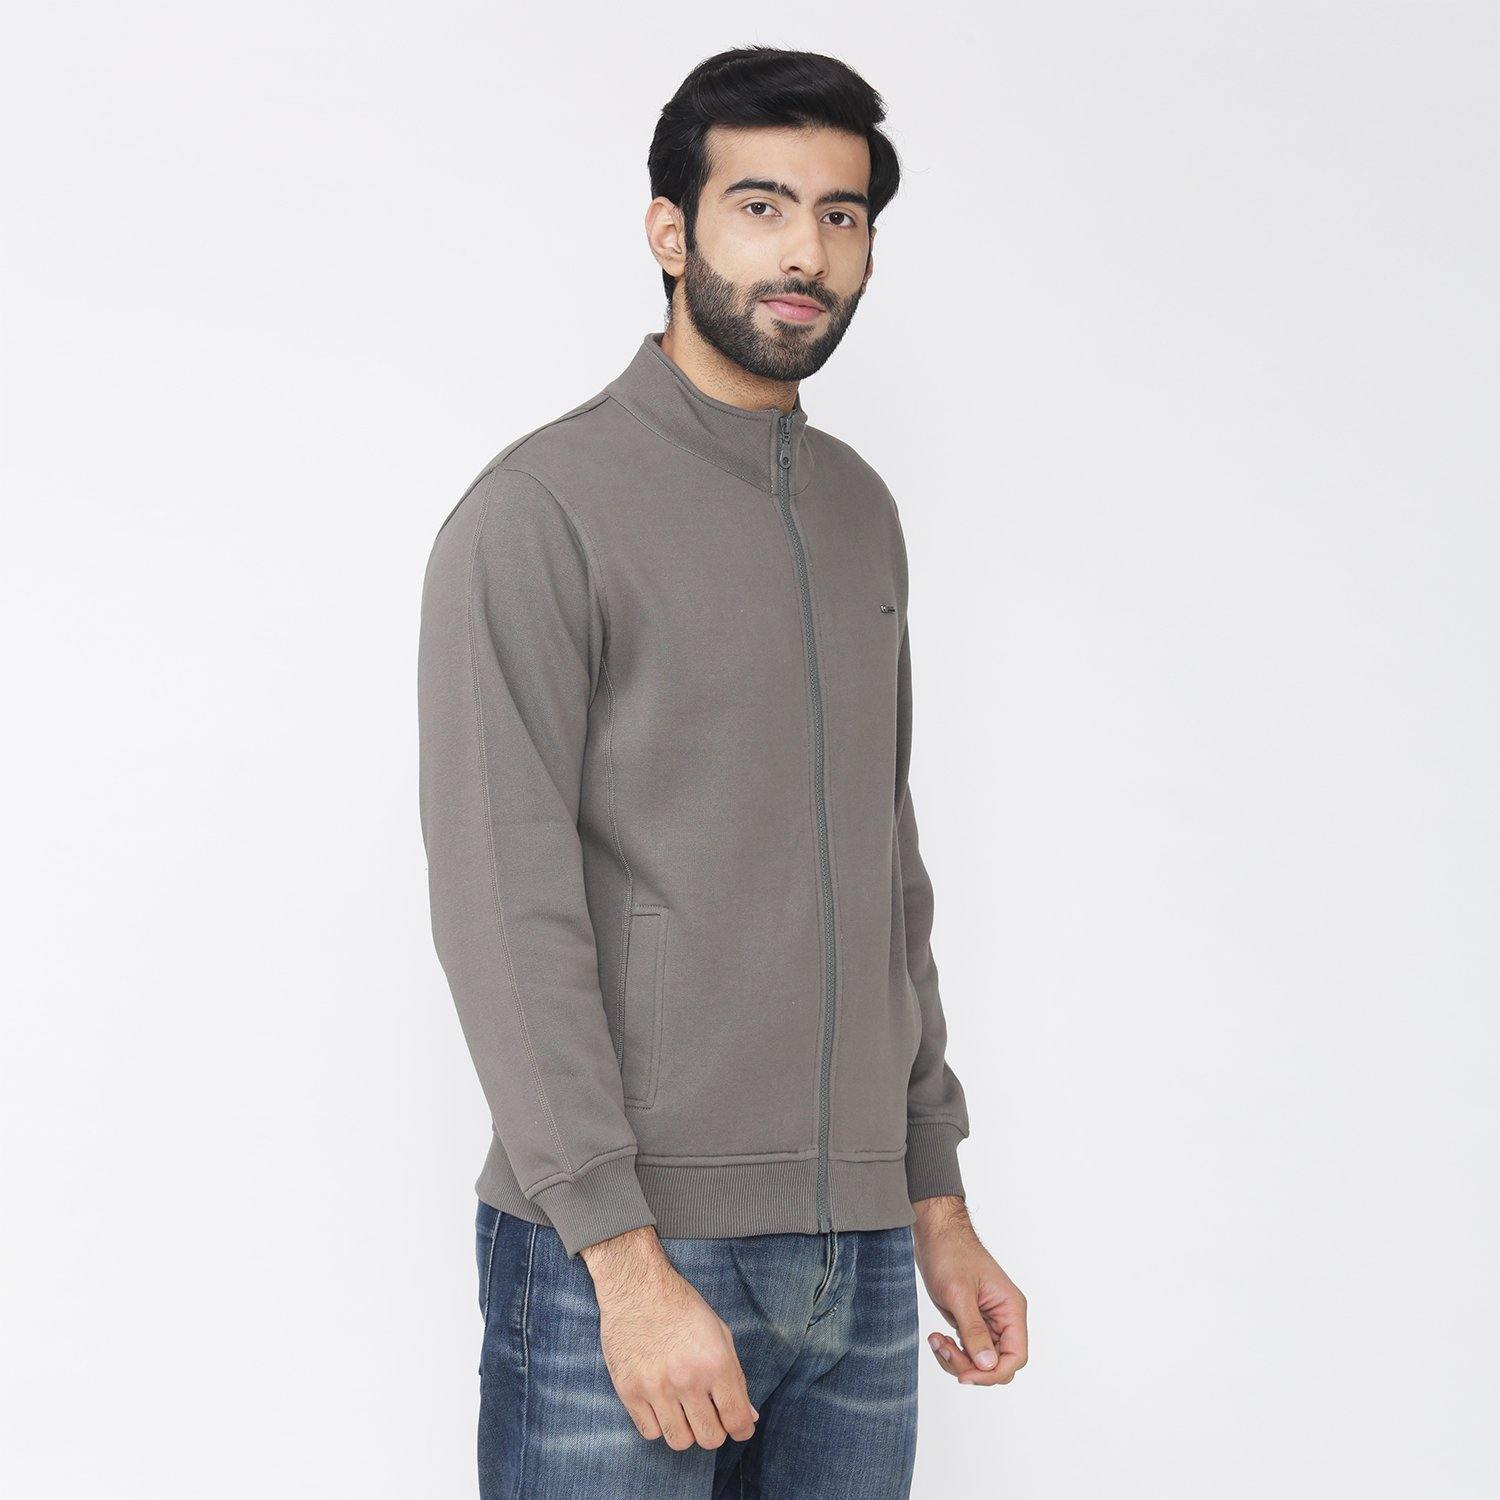 Men's Full Sleeve Plain Jacket - Dusty Olive